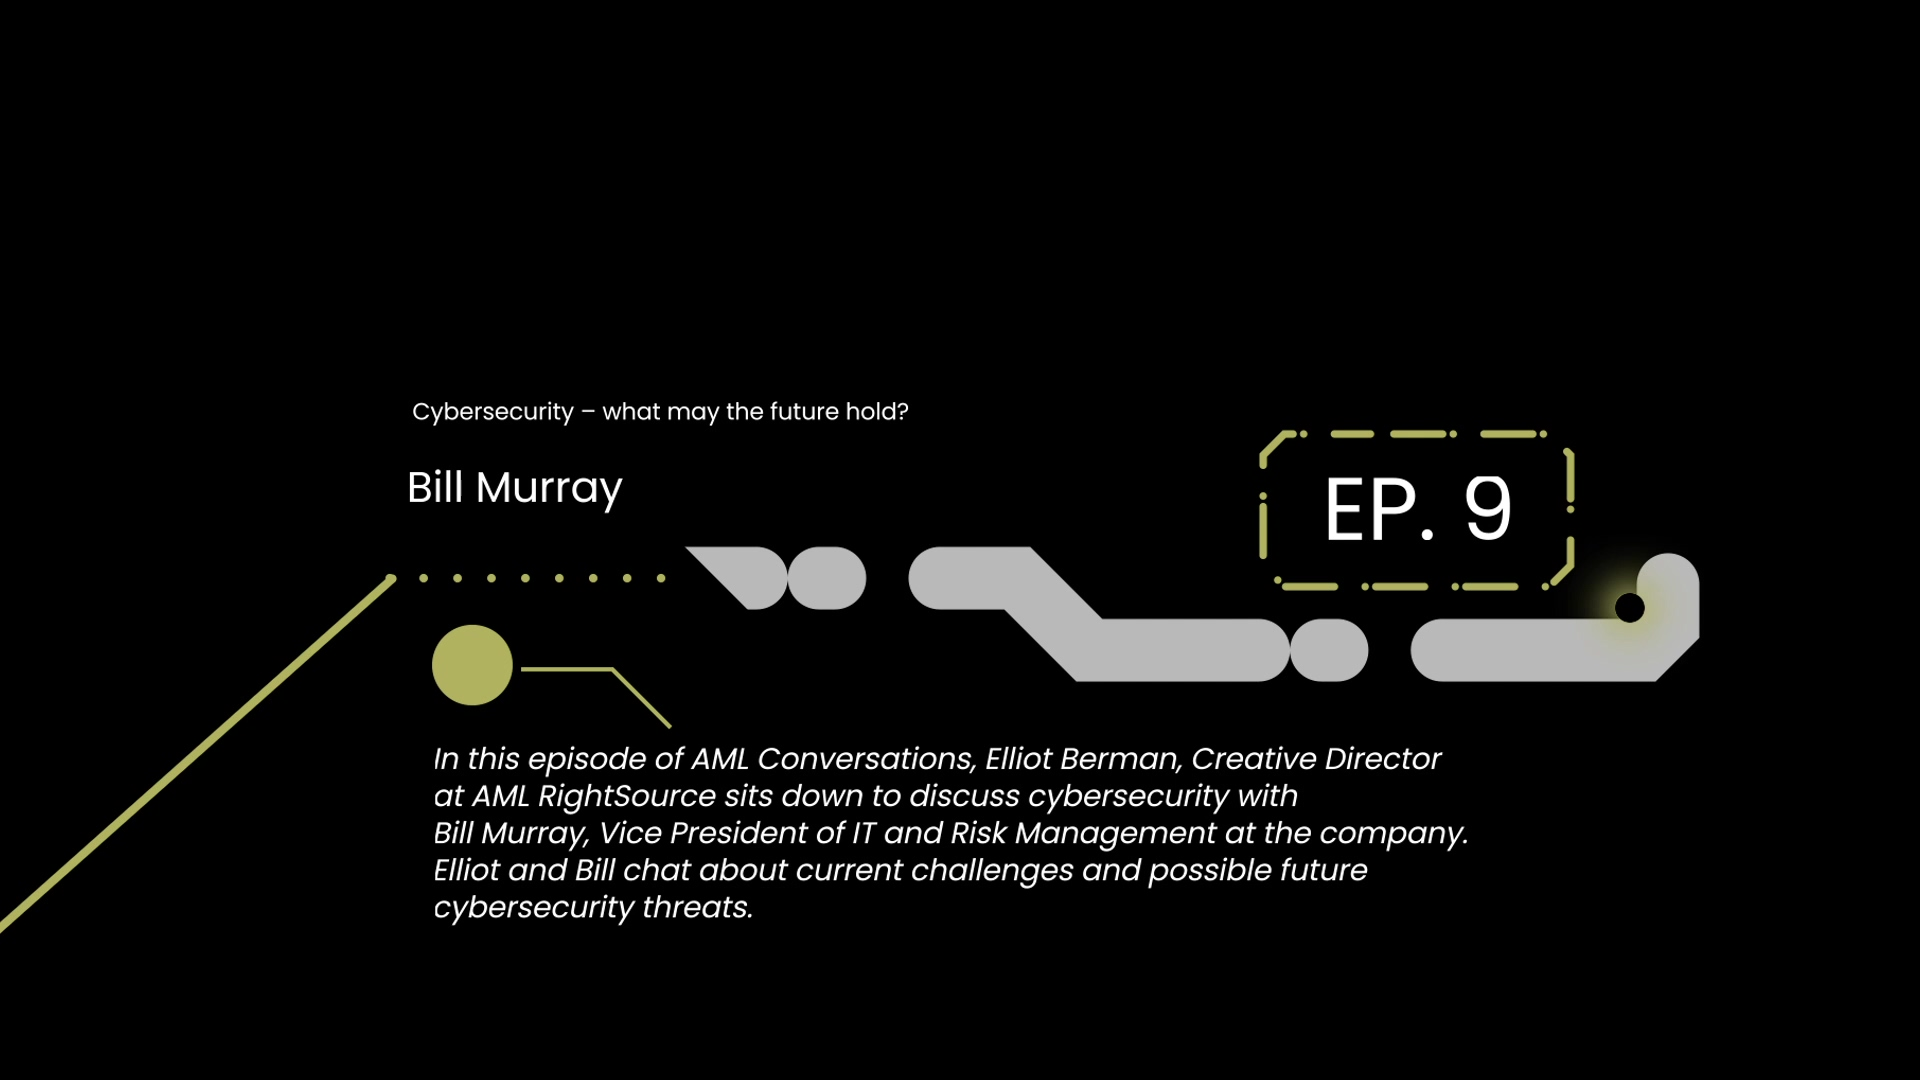 AML Conversations with Bill Murray - Cybersecurity